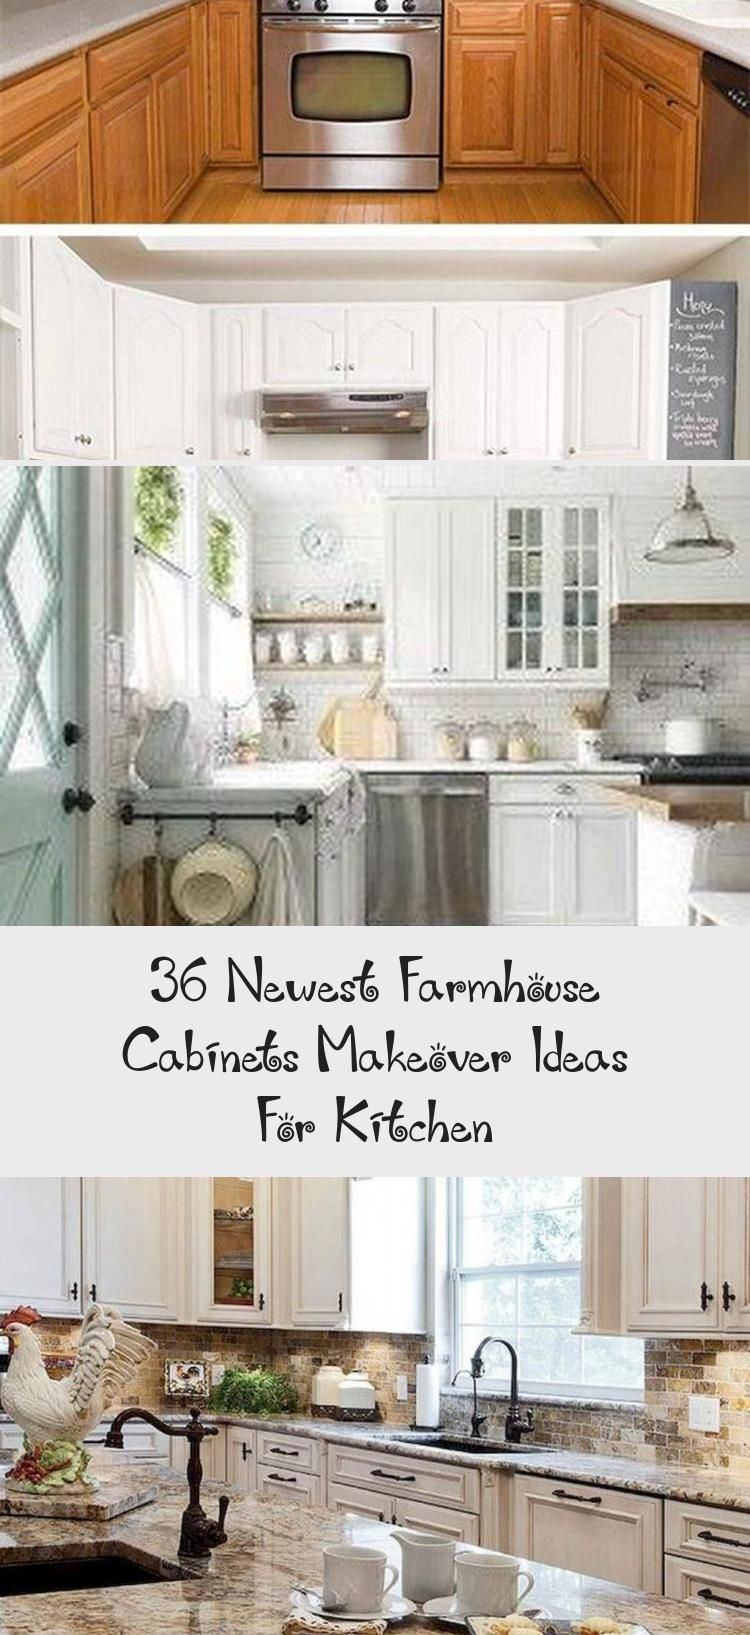 Cool 36 Newest Farmhouse Cabinets Makeover Ideas For Kitchen Kitchenredotips Kitchenredofarmhouse Kitchen Cabinet Styles Kitchen Style Country Style Kitchen